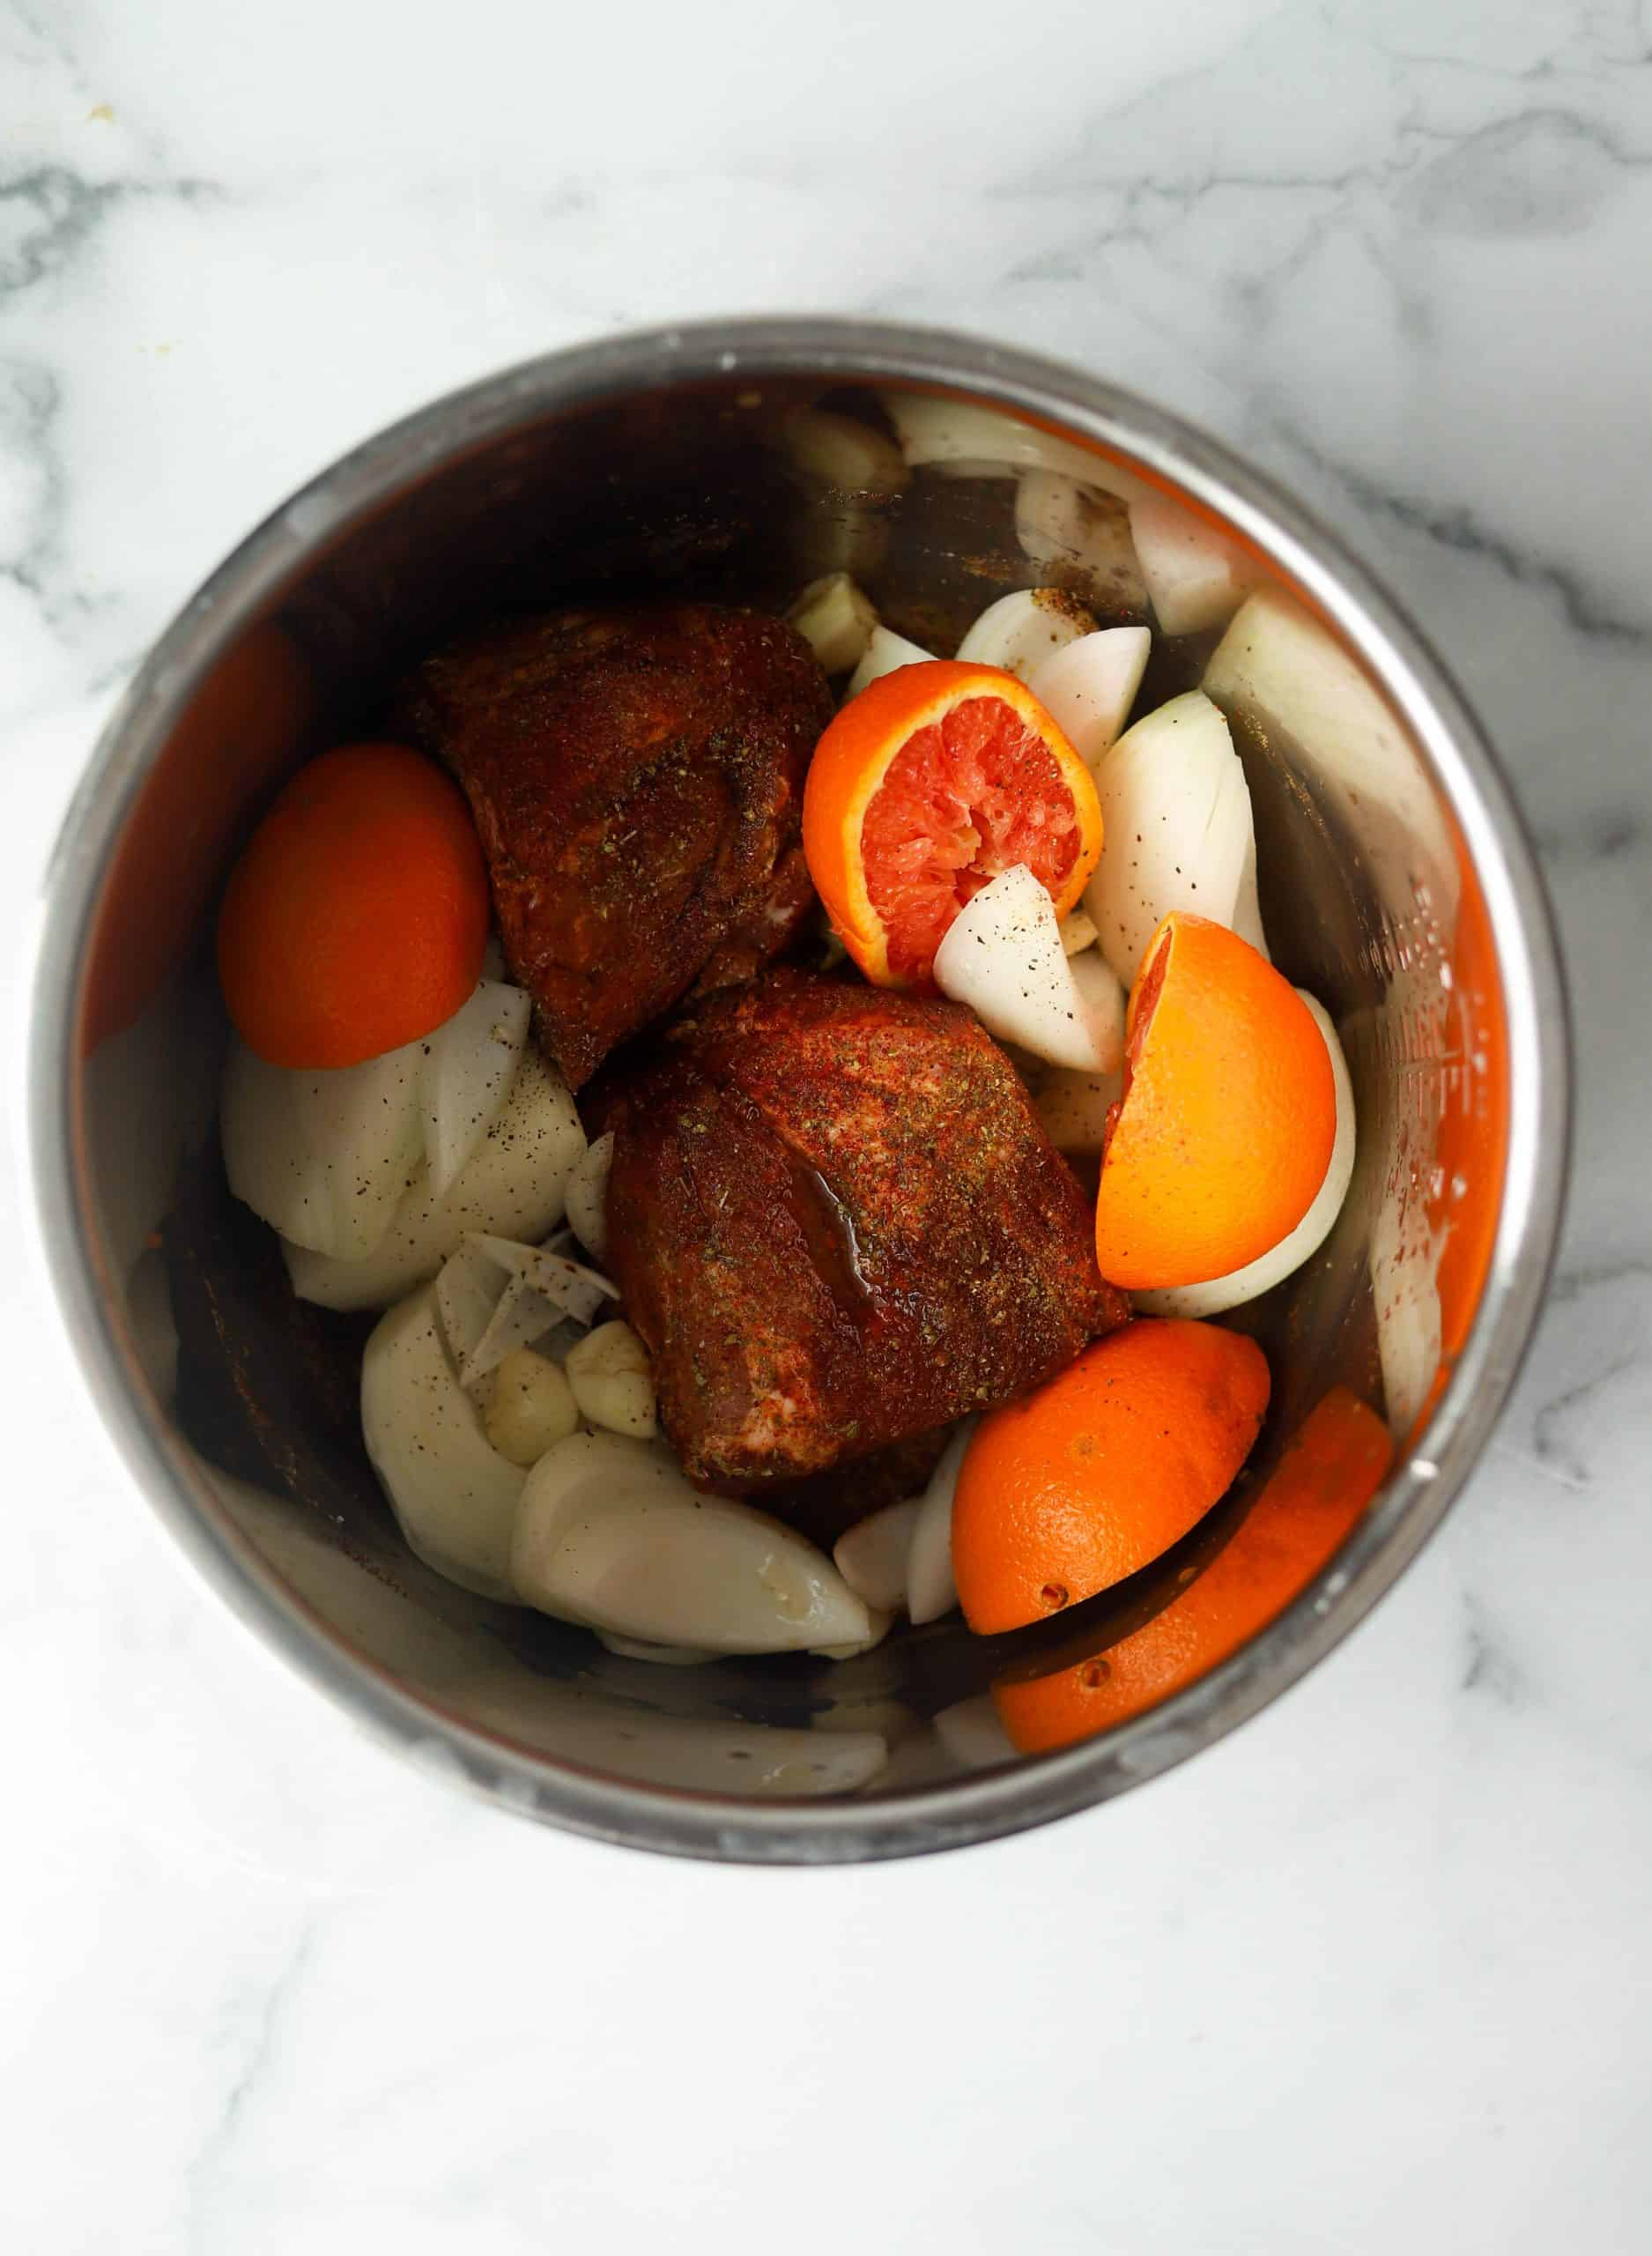 An pot filled with pork shoulder, onions, garlic and oranges.